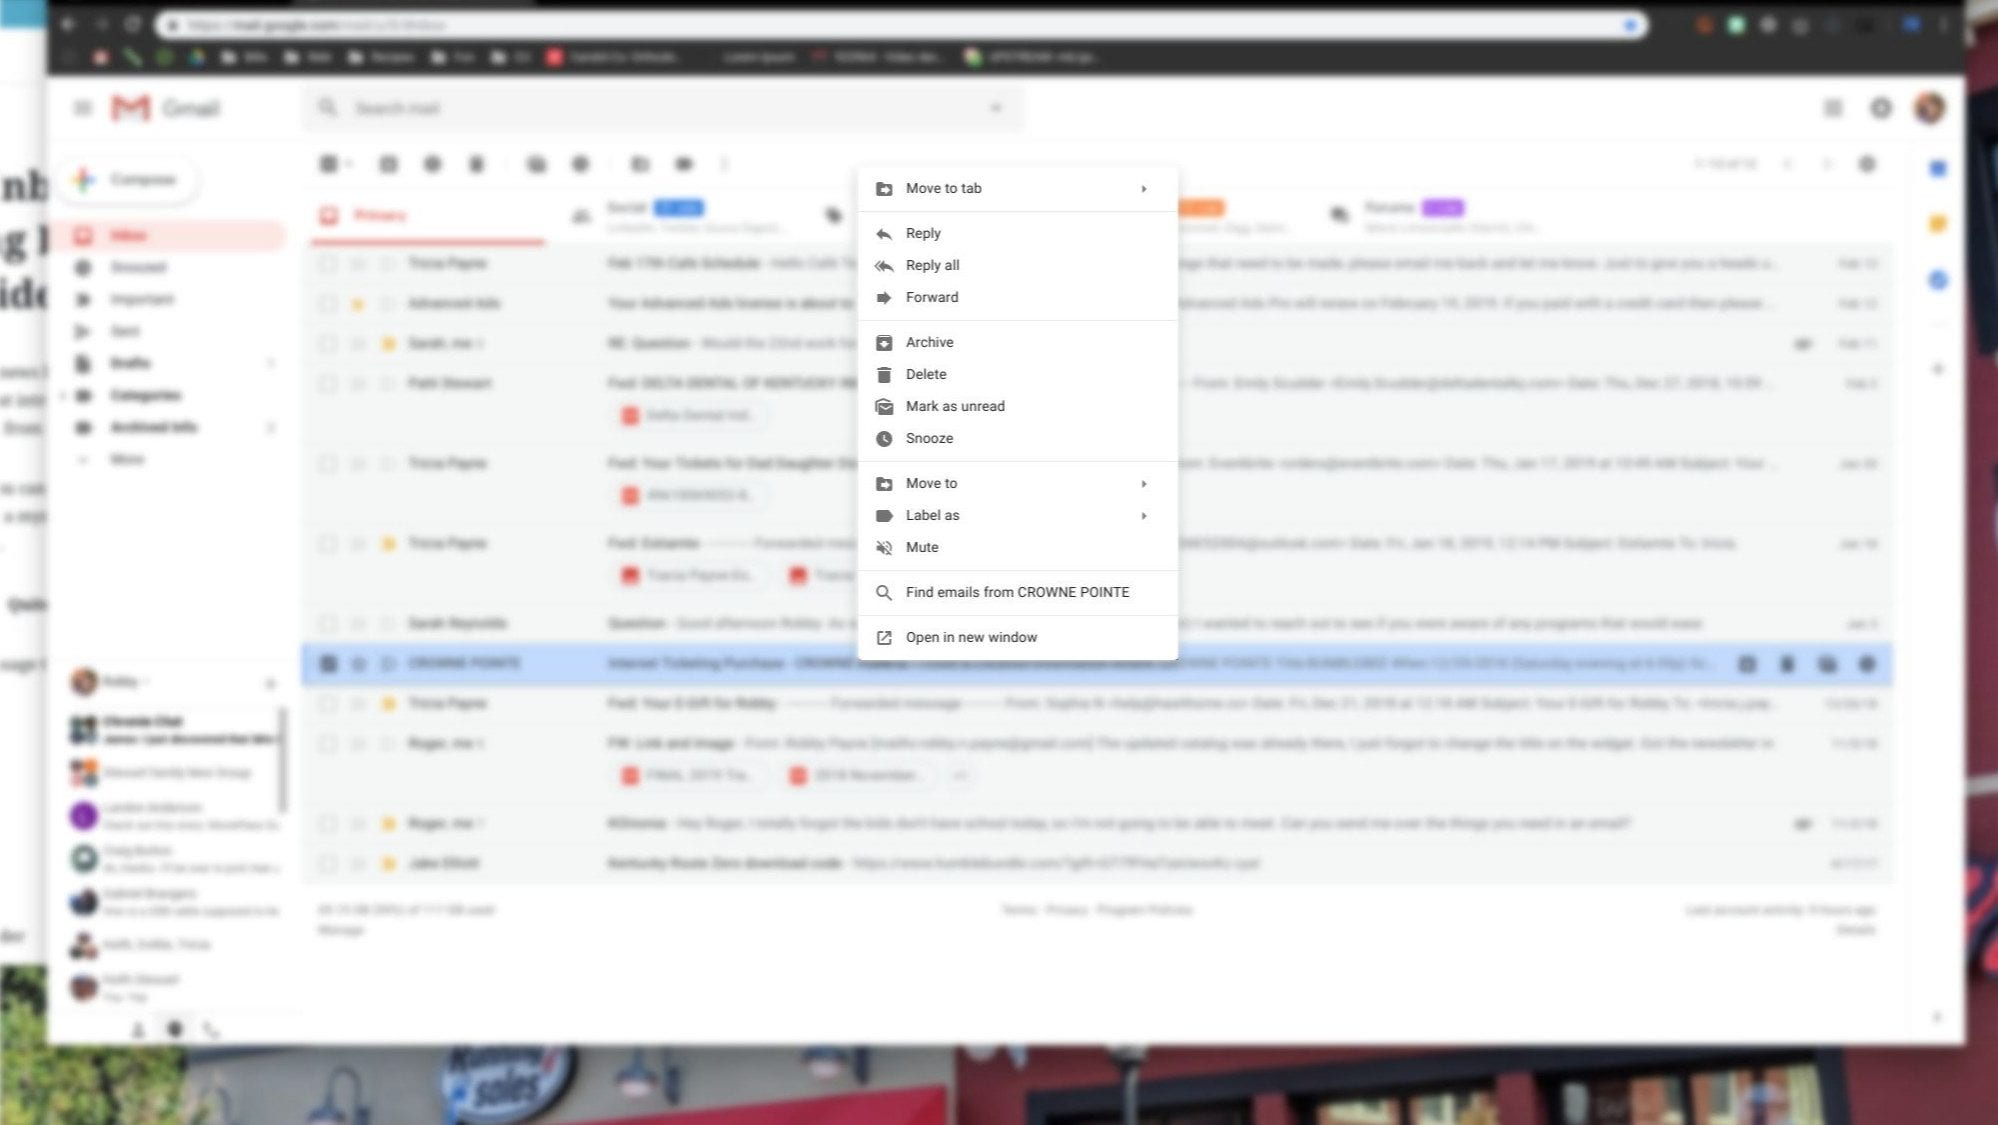 Gmail Inbox Productivity-Boosting Right Click Menu Now Widely Available